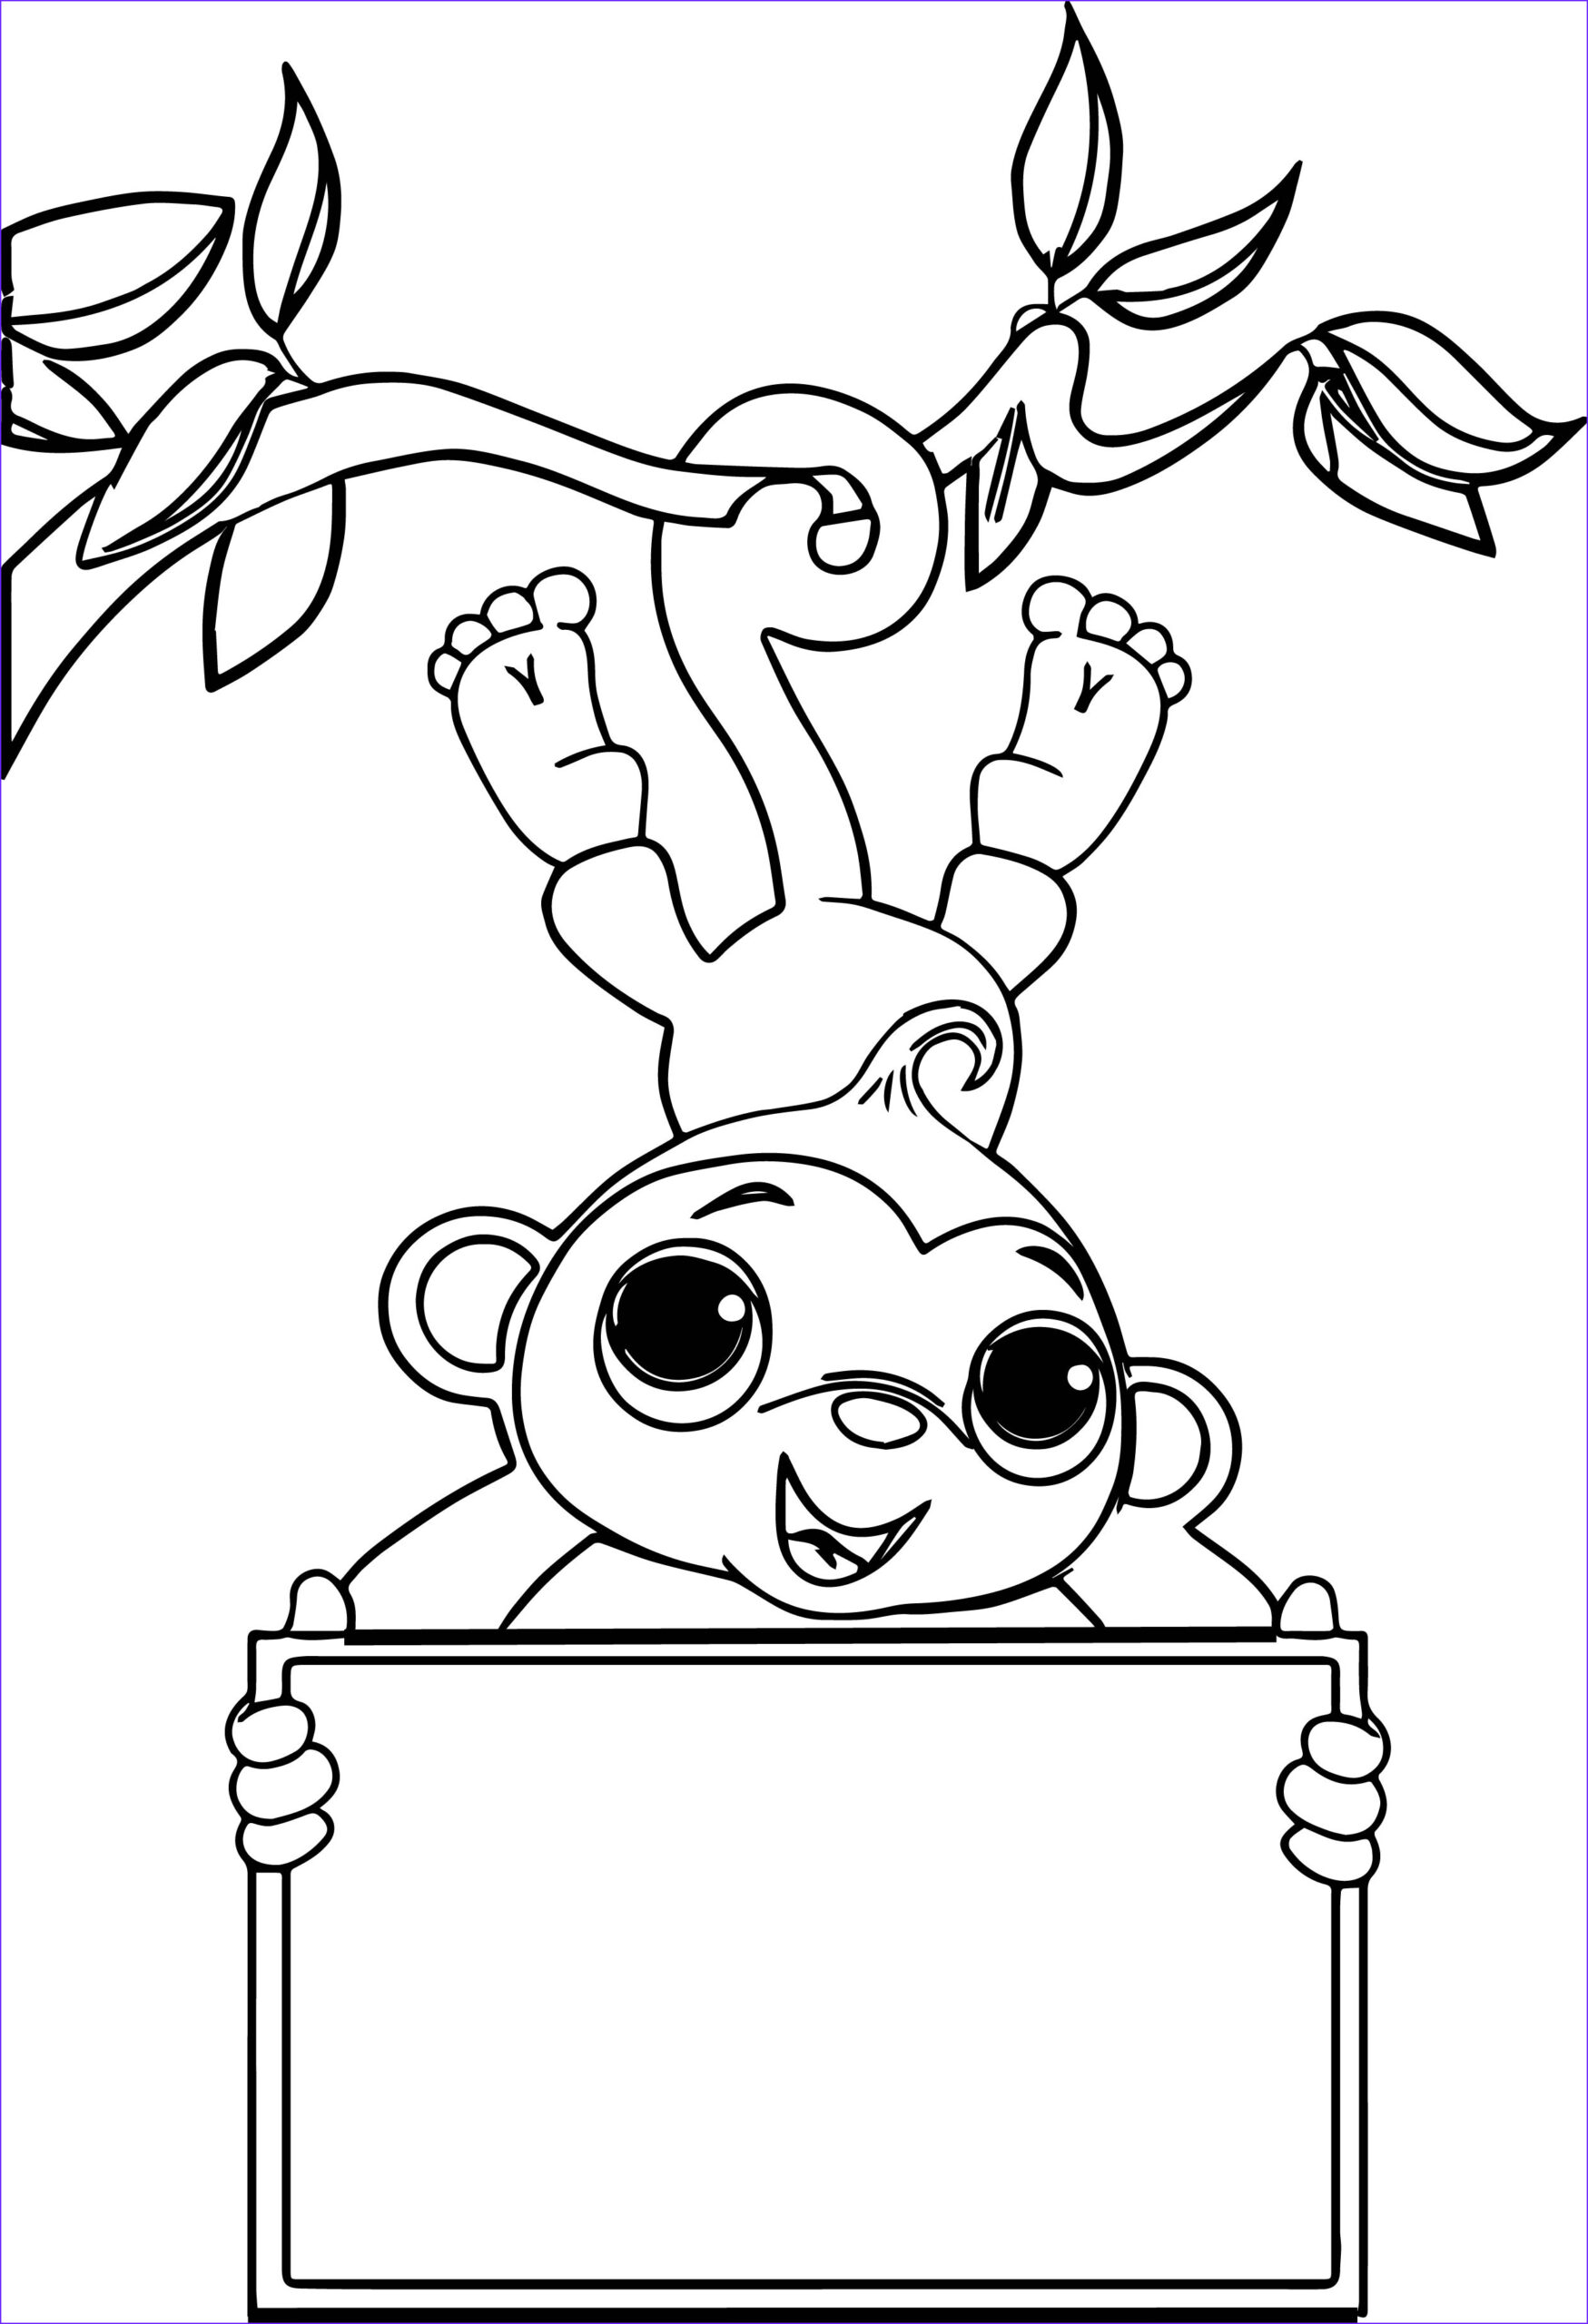 Sock Monkey Coloring Pages Elegant Photos sock Drawing at Getdrawings